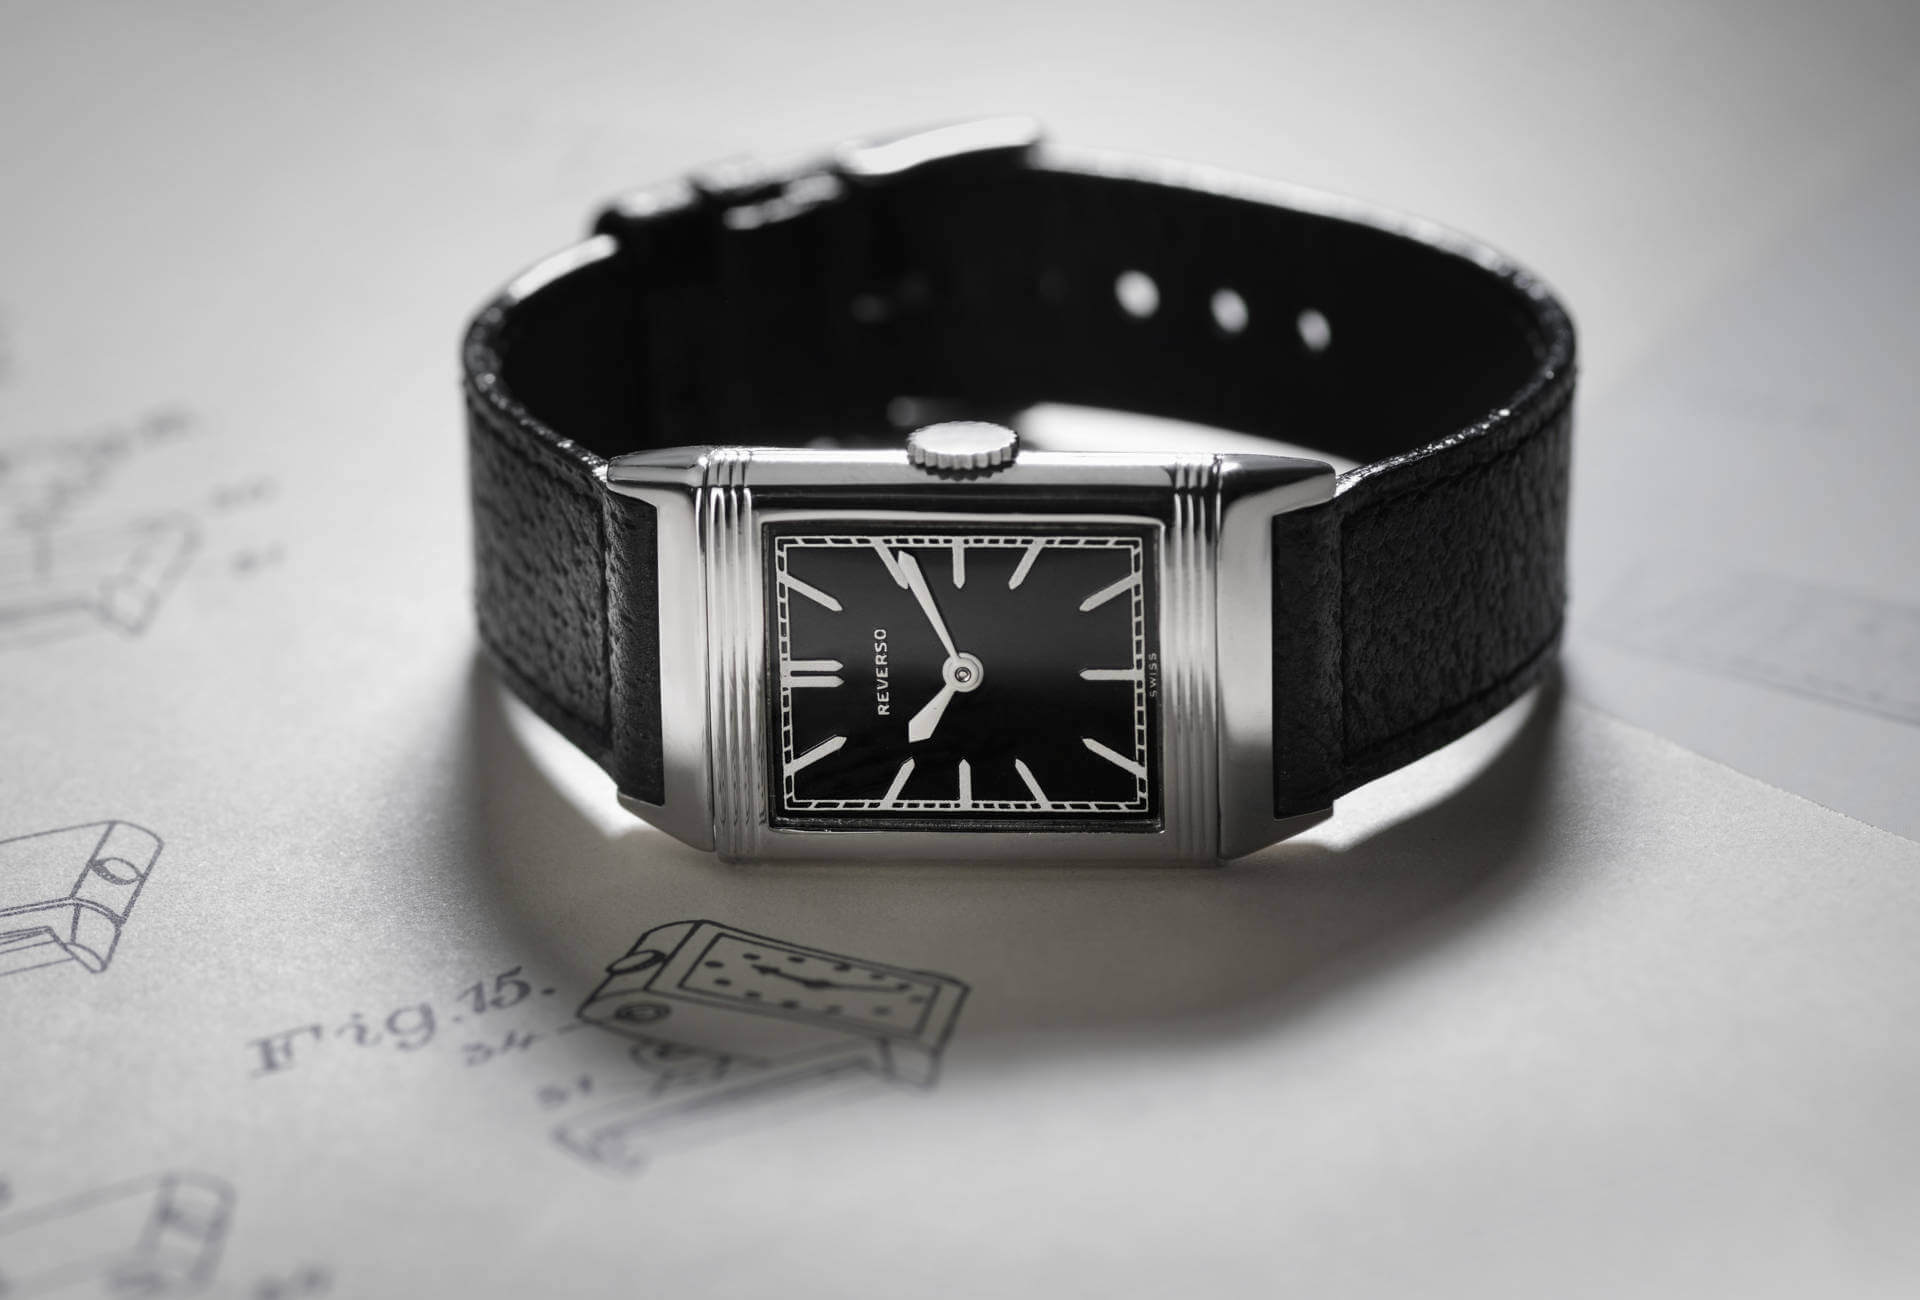 97735e4b56cb The endless possibilities of the Reverso – FHH Journal